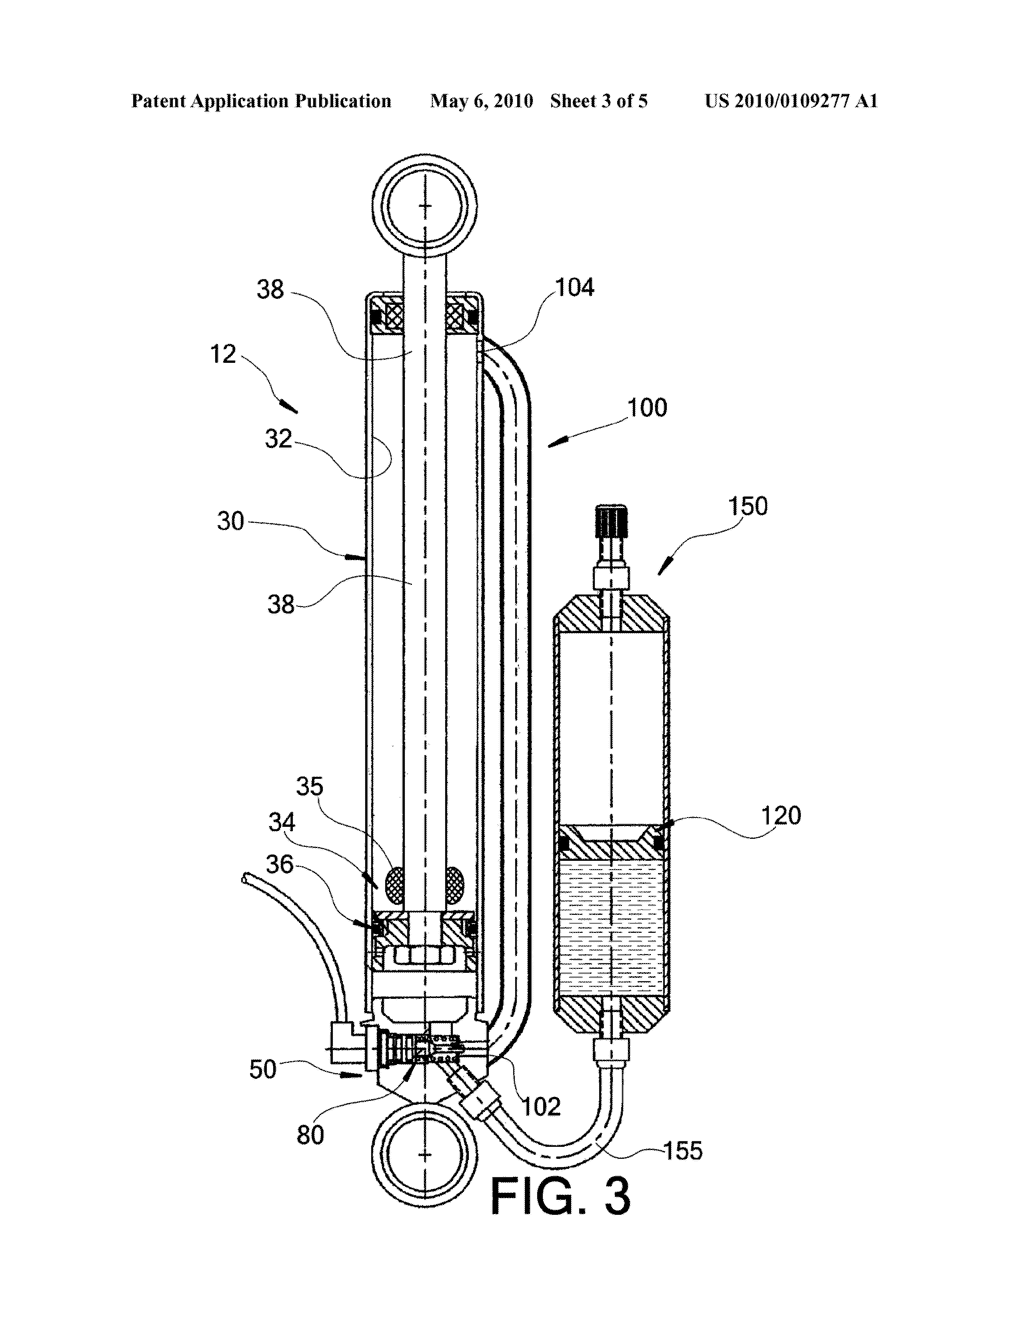 adjustable monotube shock absorber diagram, schematic, and image 04 Shock Absorber Parts Diagram